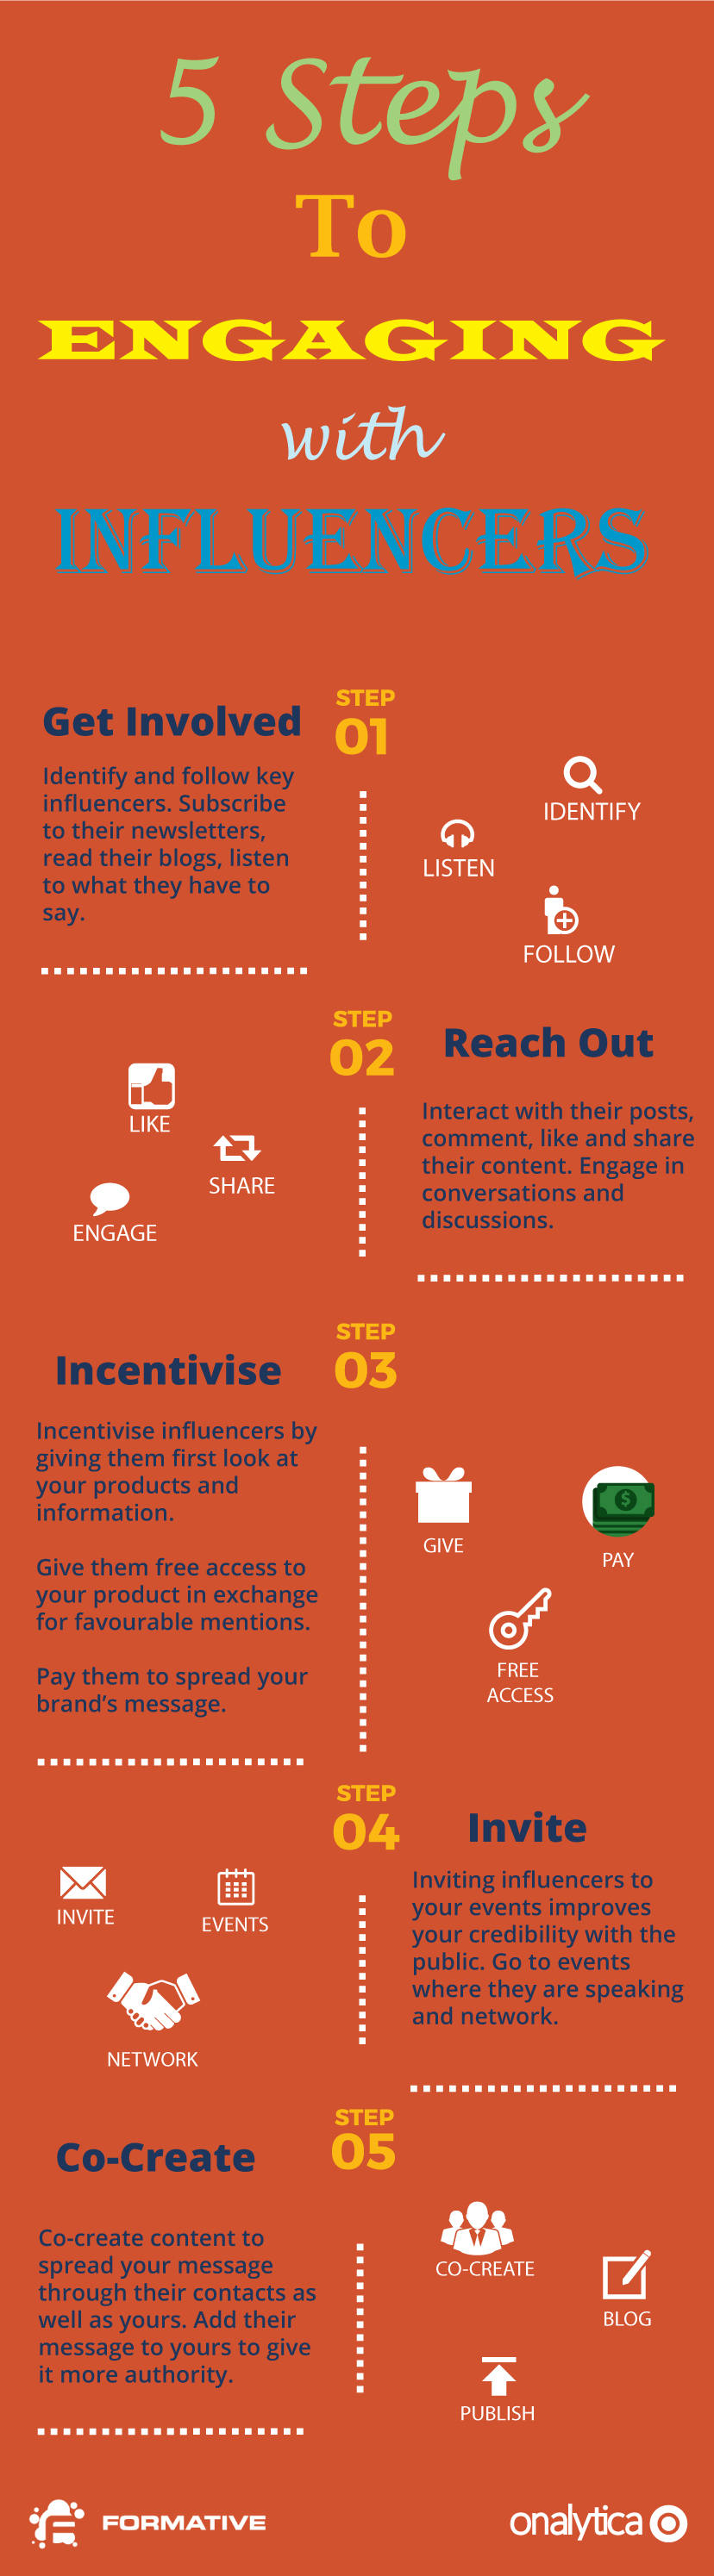 Onalytica / Formative - 5 Ways to engage with Influencers [INFOGRAPHIC]